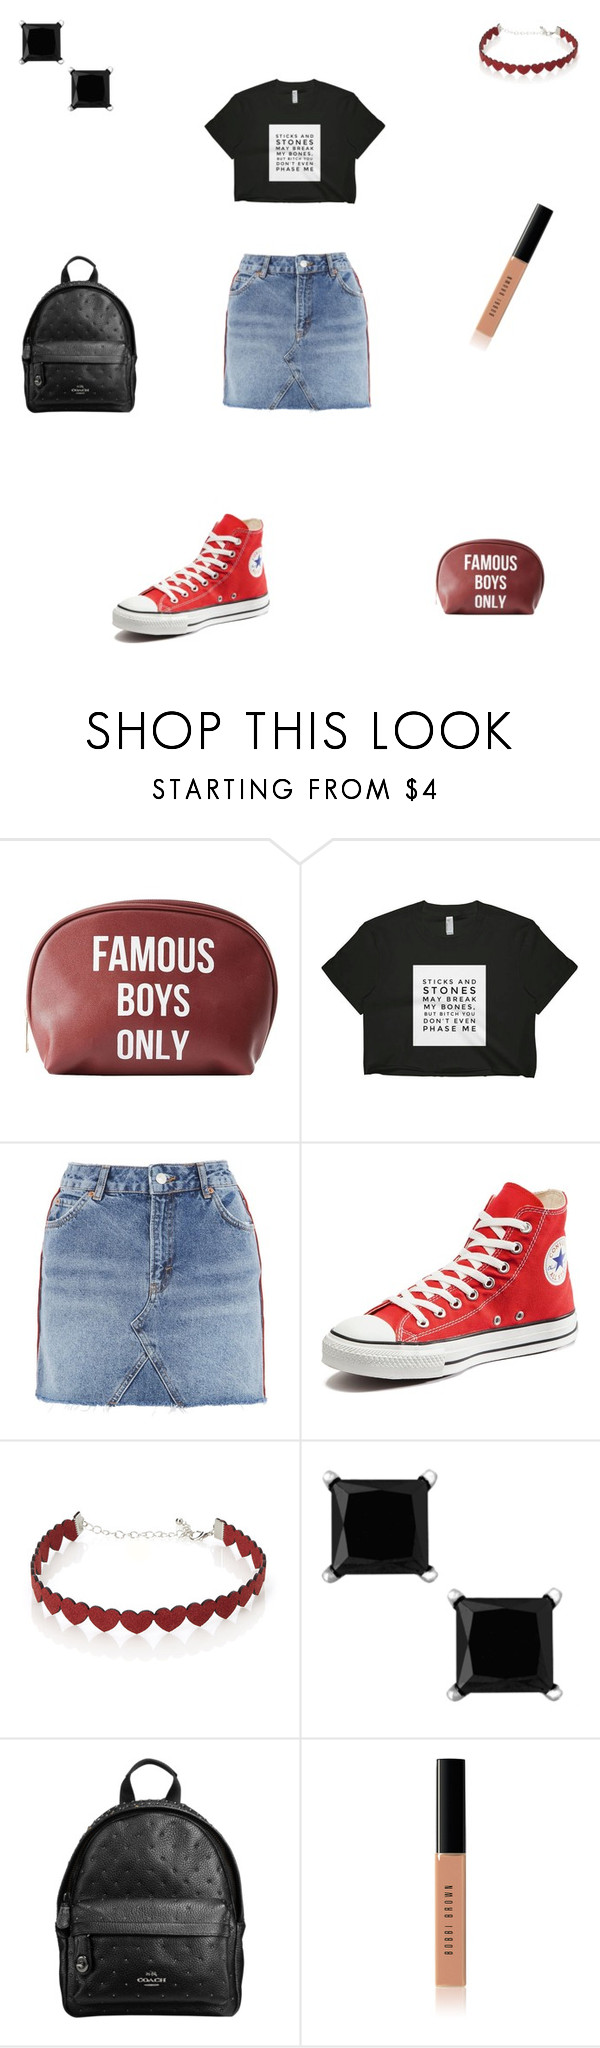 """""""Untitled #645"""" by maddieisurs ❤ liked on Polyvore featuring Charlotte Russe, Topshop, Converse, Simons, Coach and Bobbi Brown Cosmetics"""